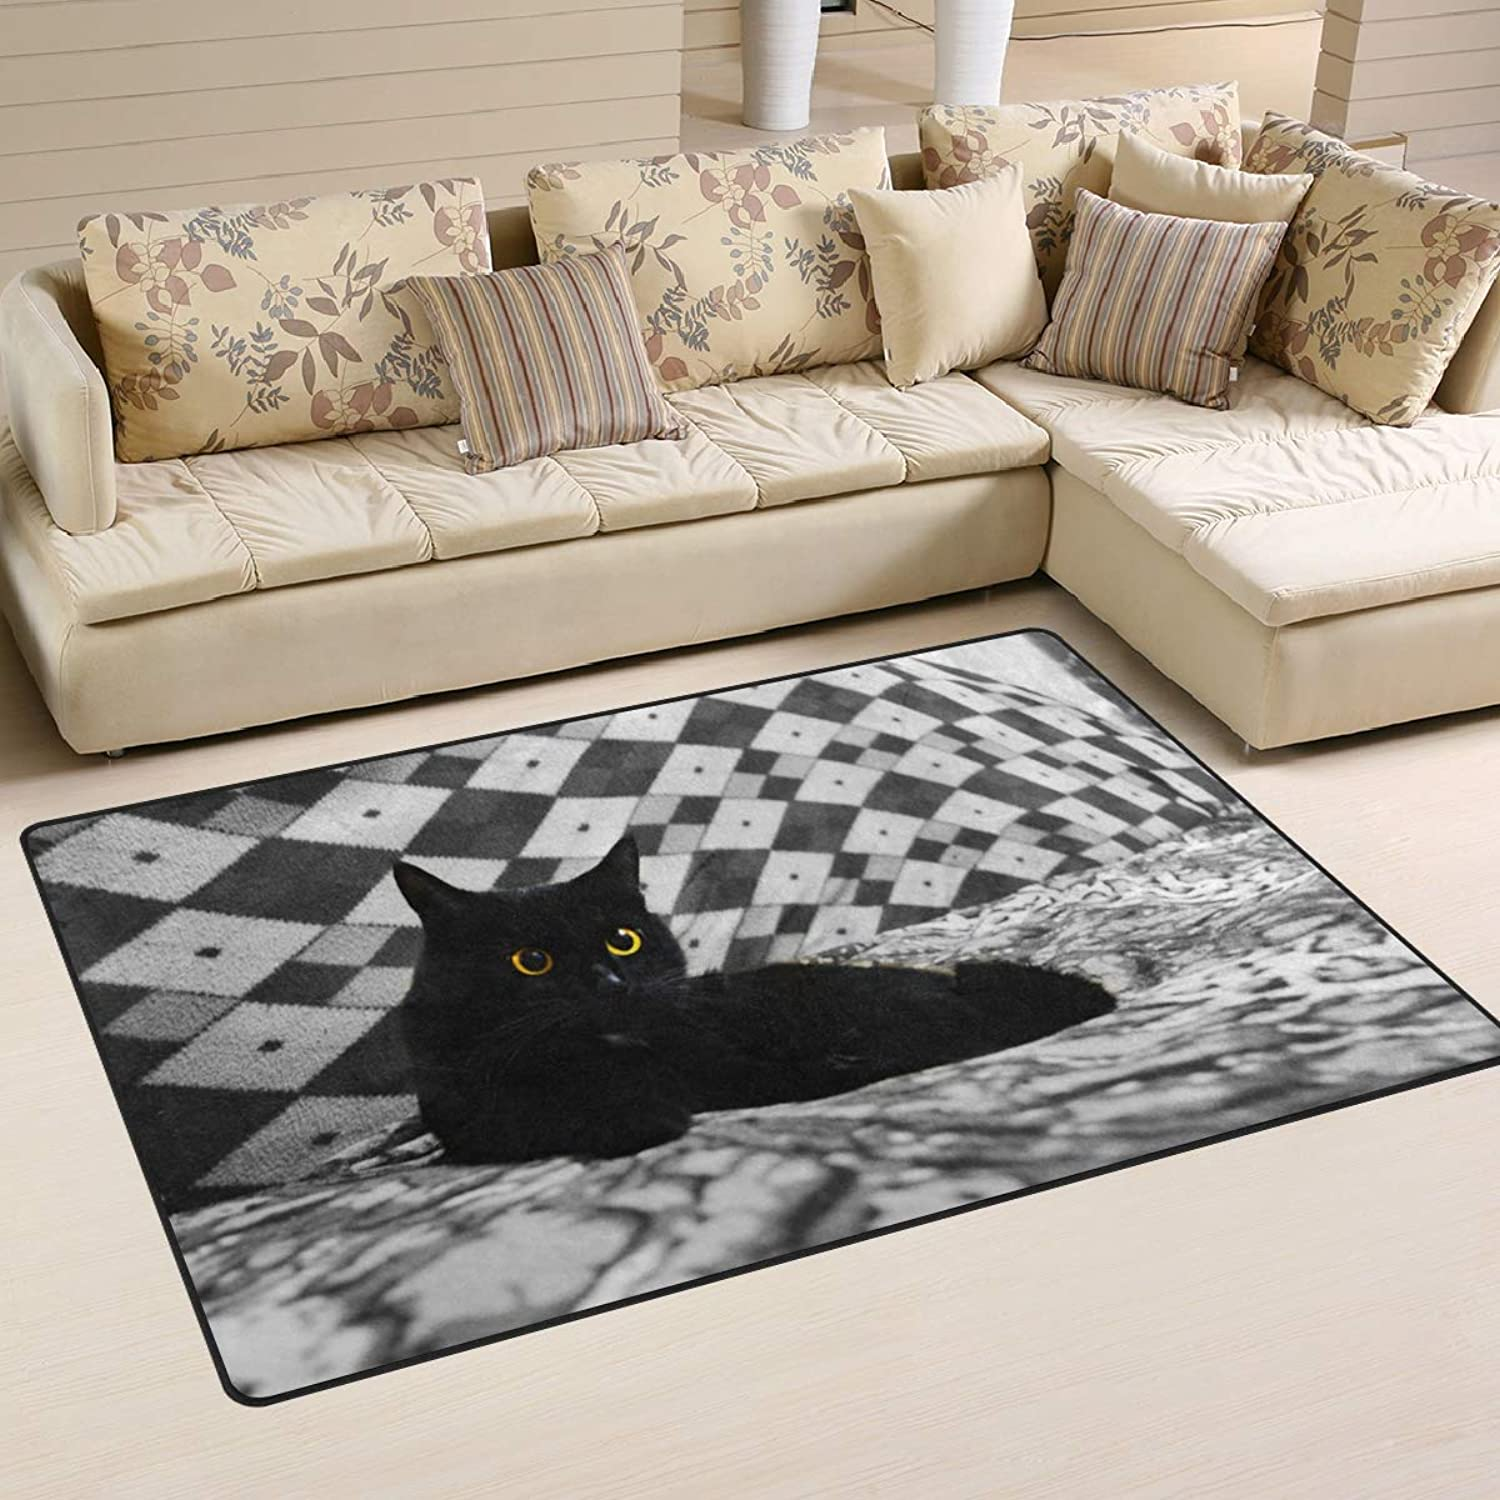 Area Rugs Doormats Back Cat in The Bed 5'x3'3 (60x39 Inches) Non-Slip Floor Mat Soft Carpet for Living Dining Bedroom Home